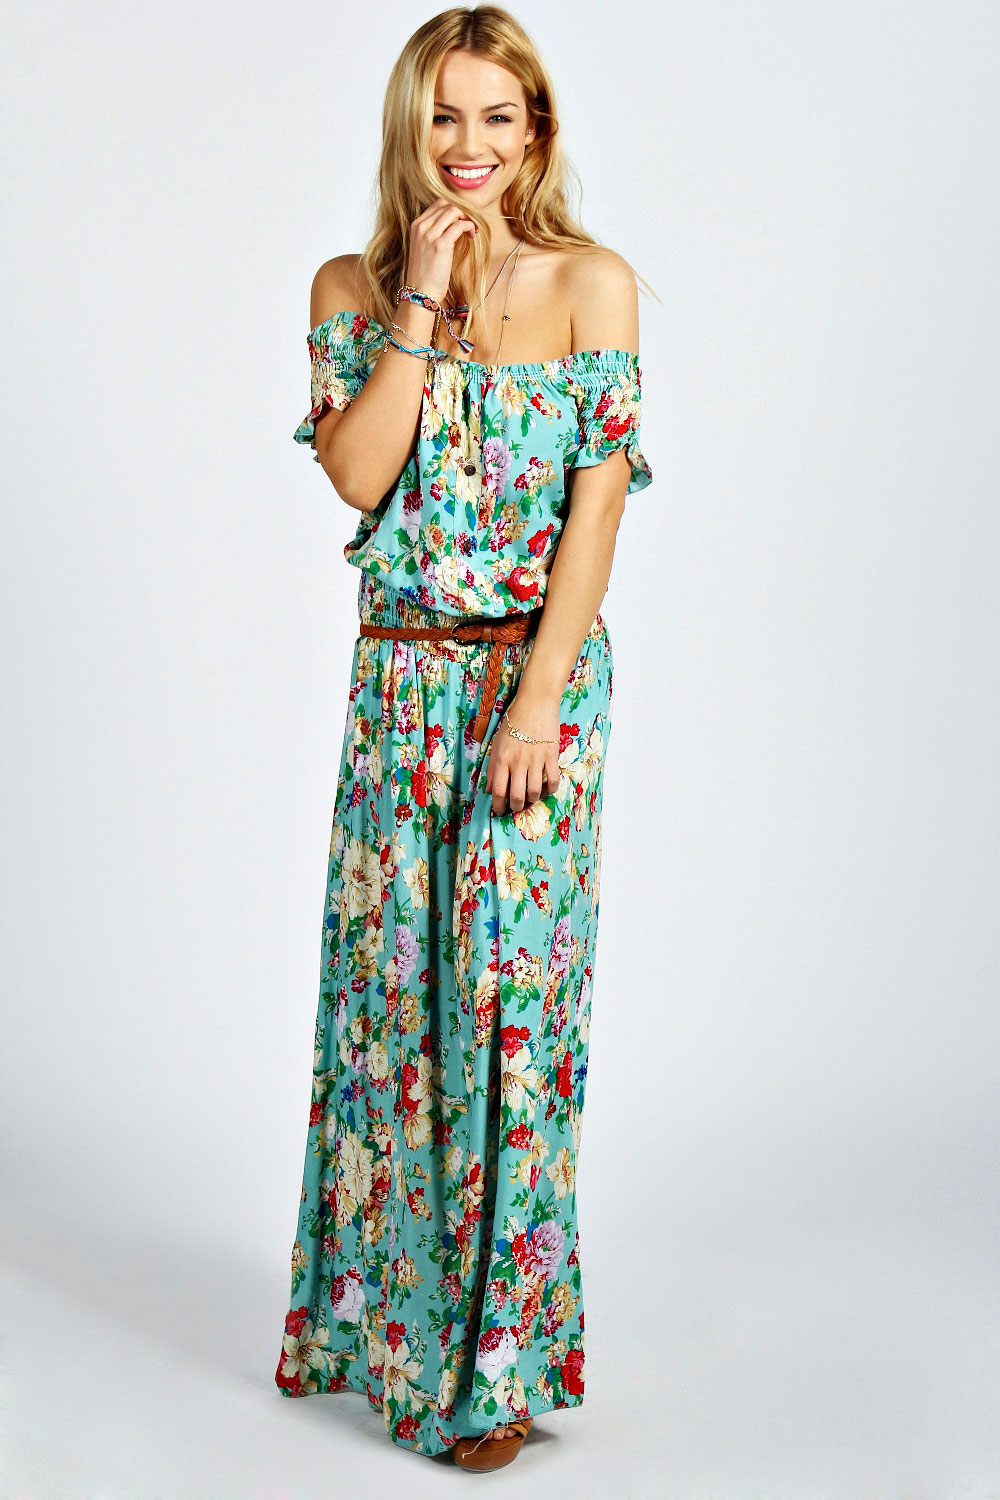 bohemian wedding guest dresses photo - 1